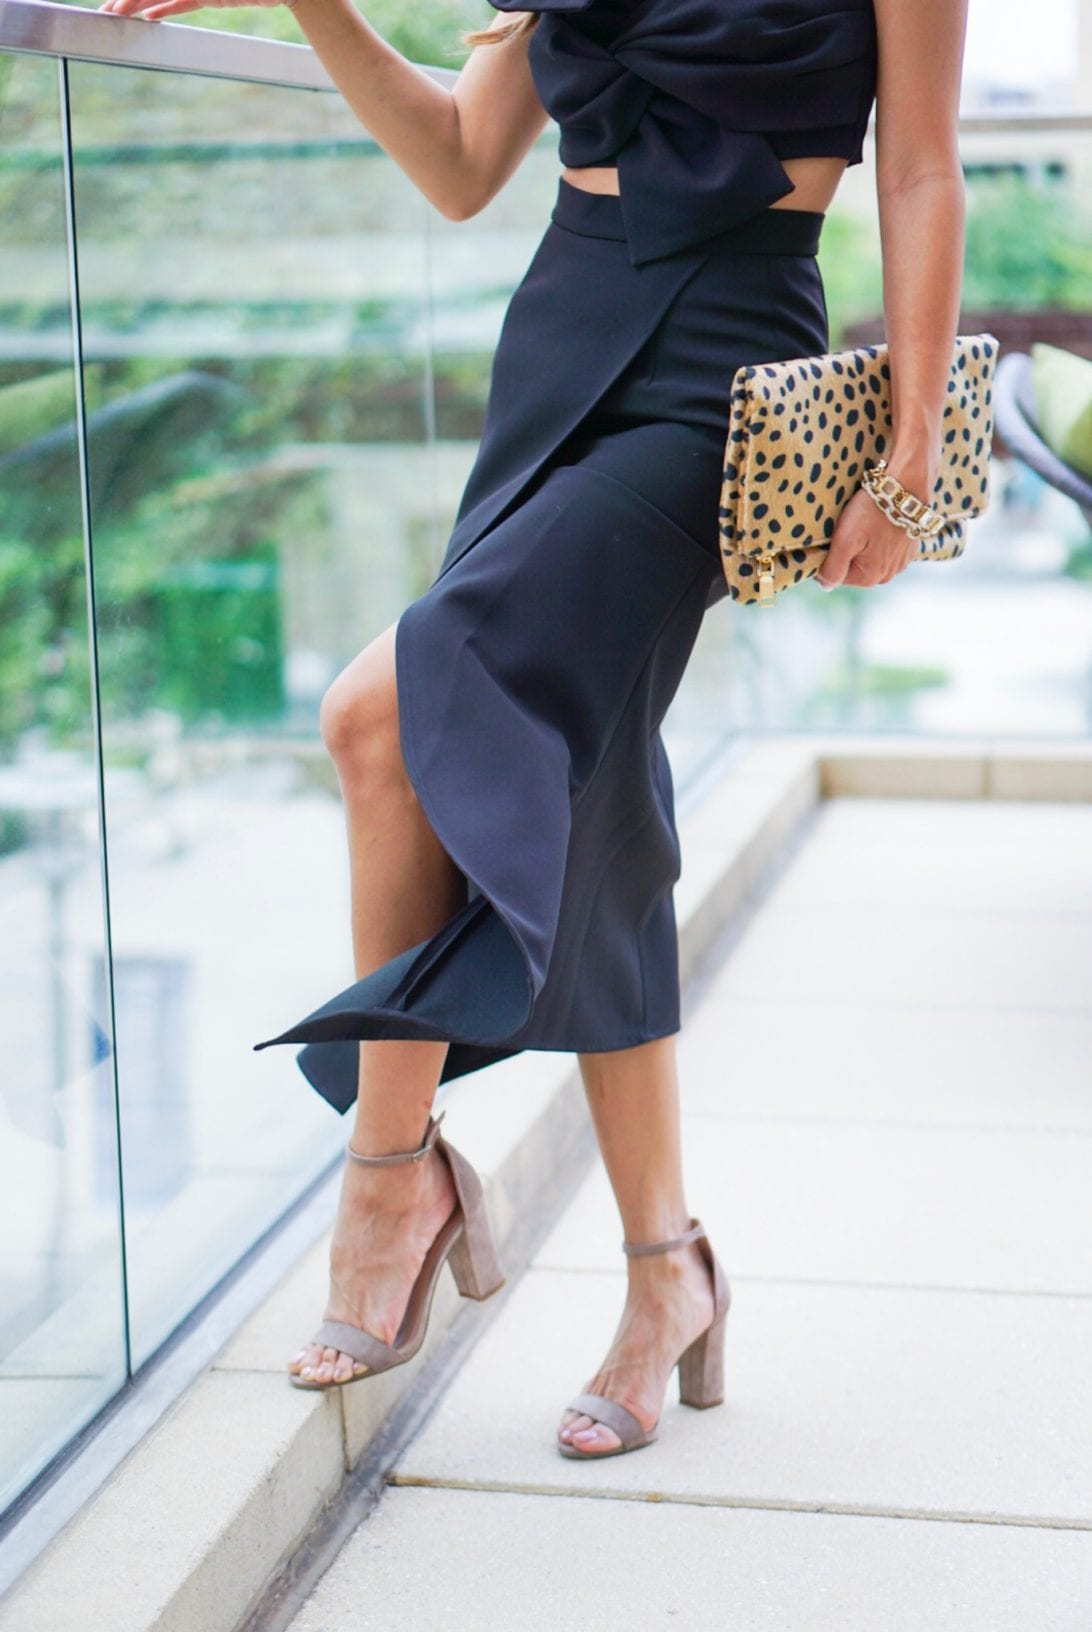 steve madden block heels, cheetah clutch, black dress, black two piece dress